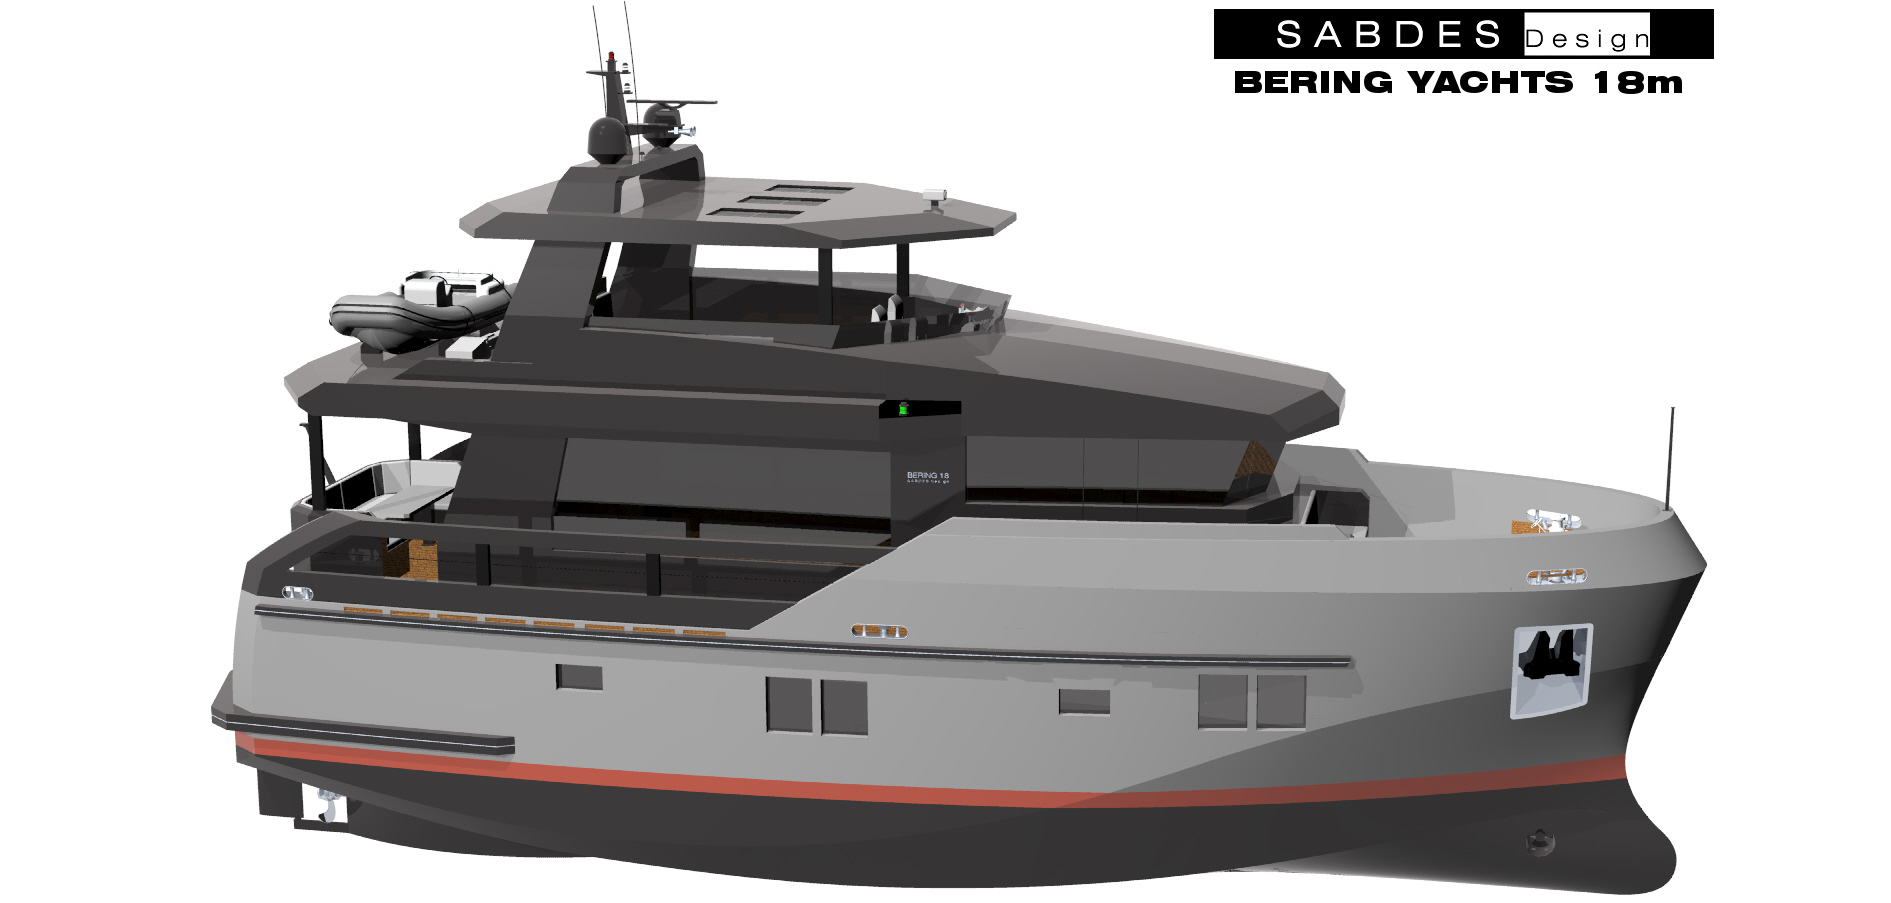 New 18m explorer motor yacht Bering 18 created by Sabdes